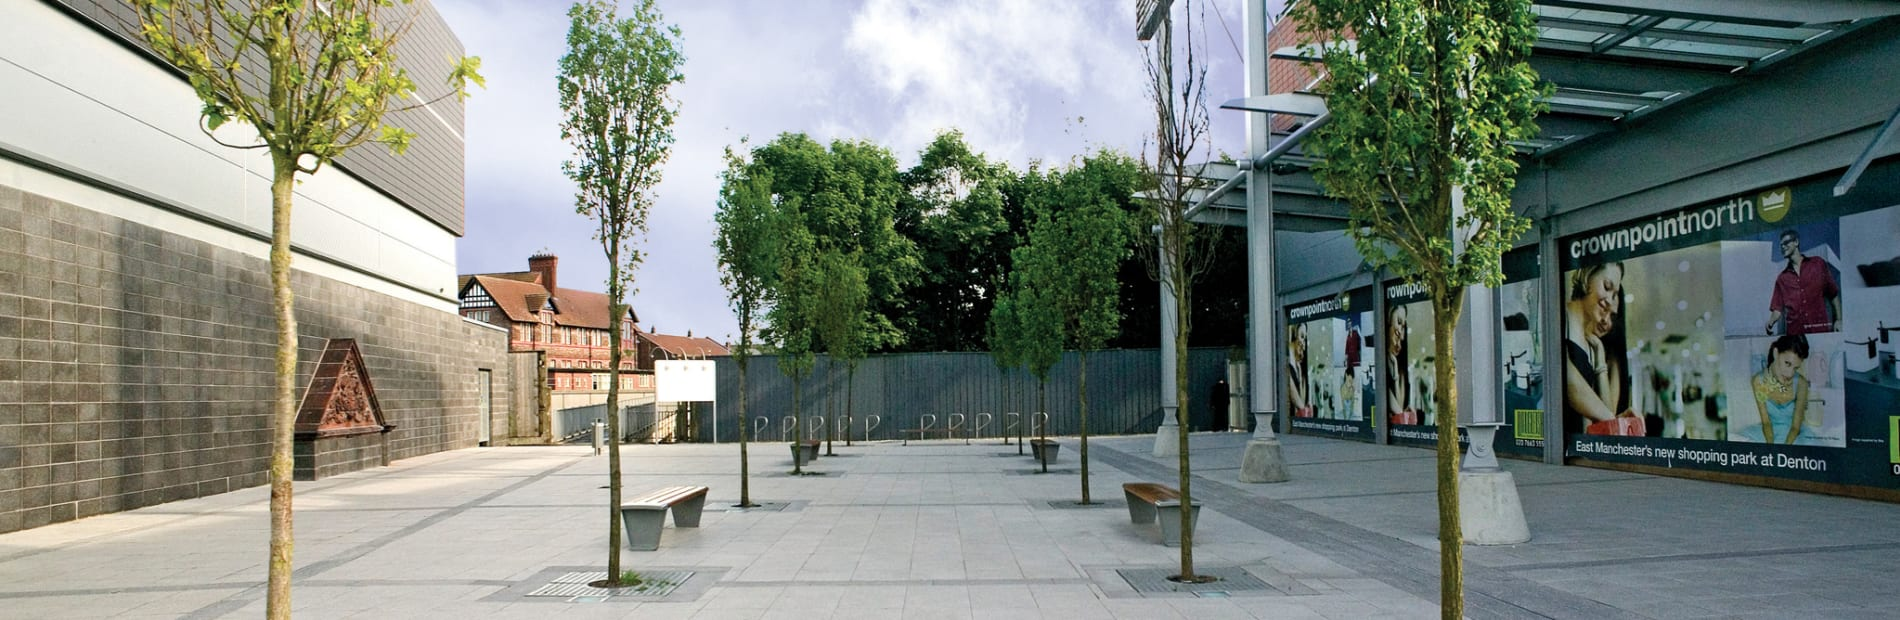 sineu graff rendezvous benches and pennant cycle parking